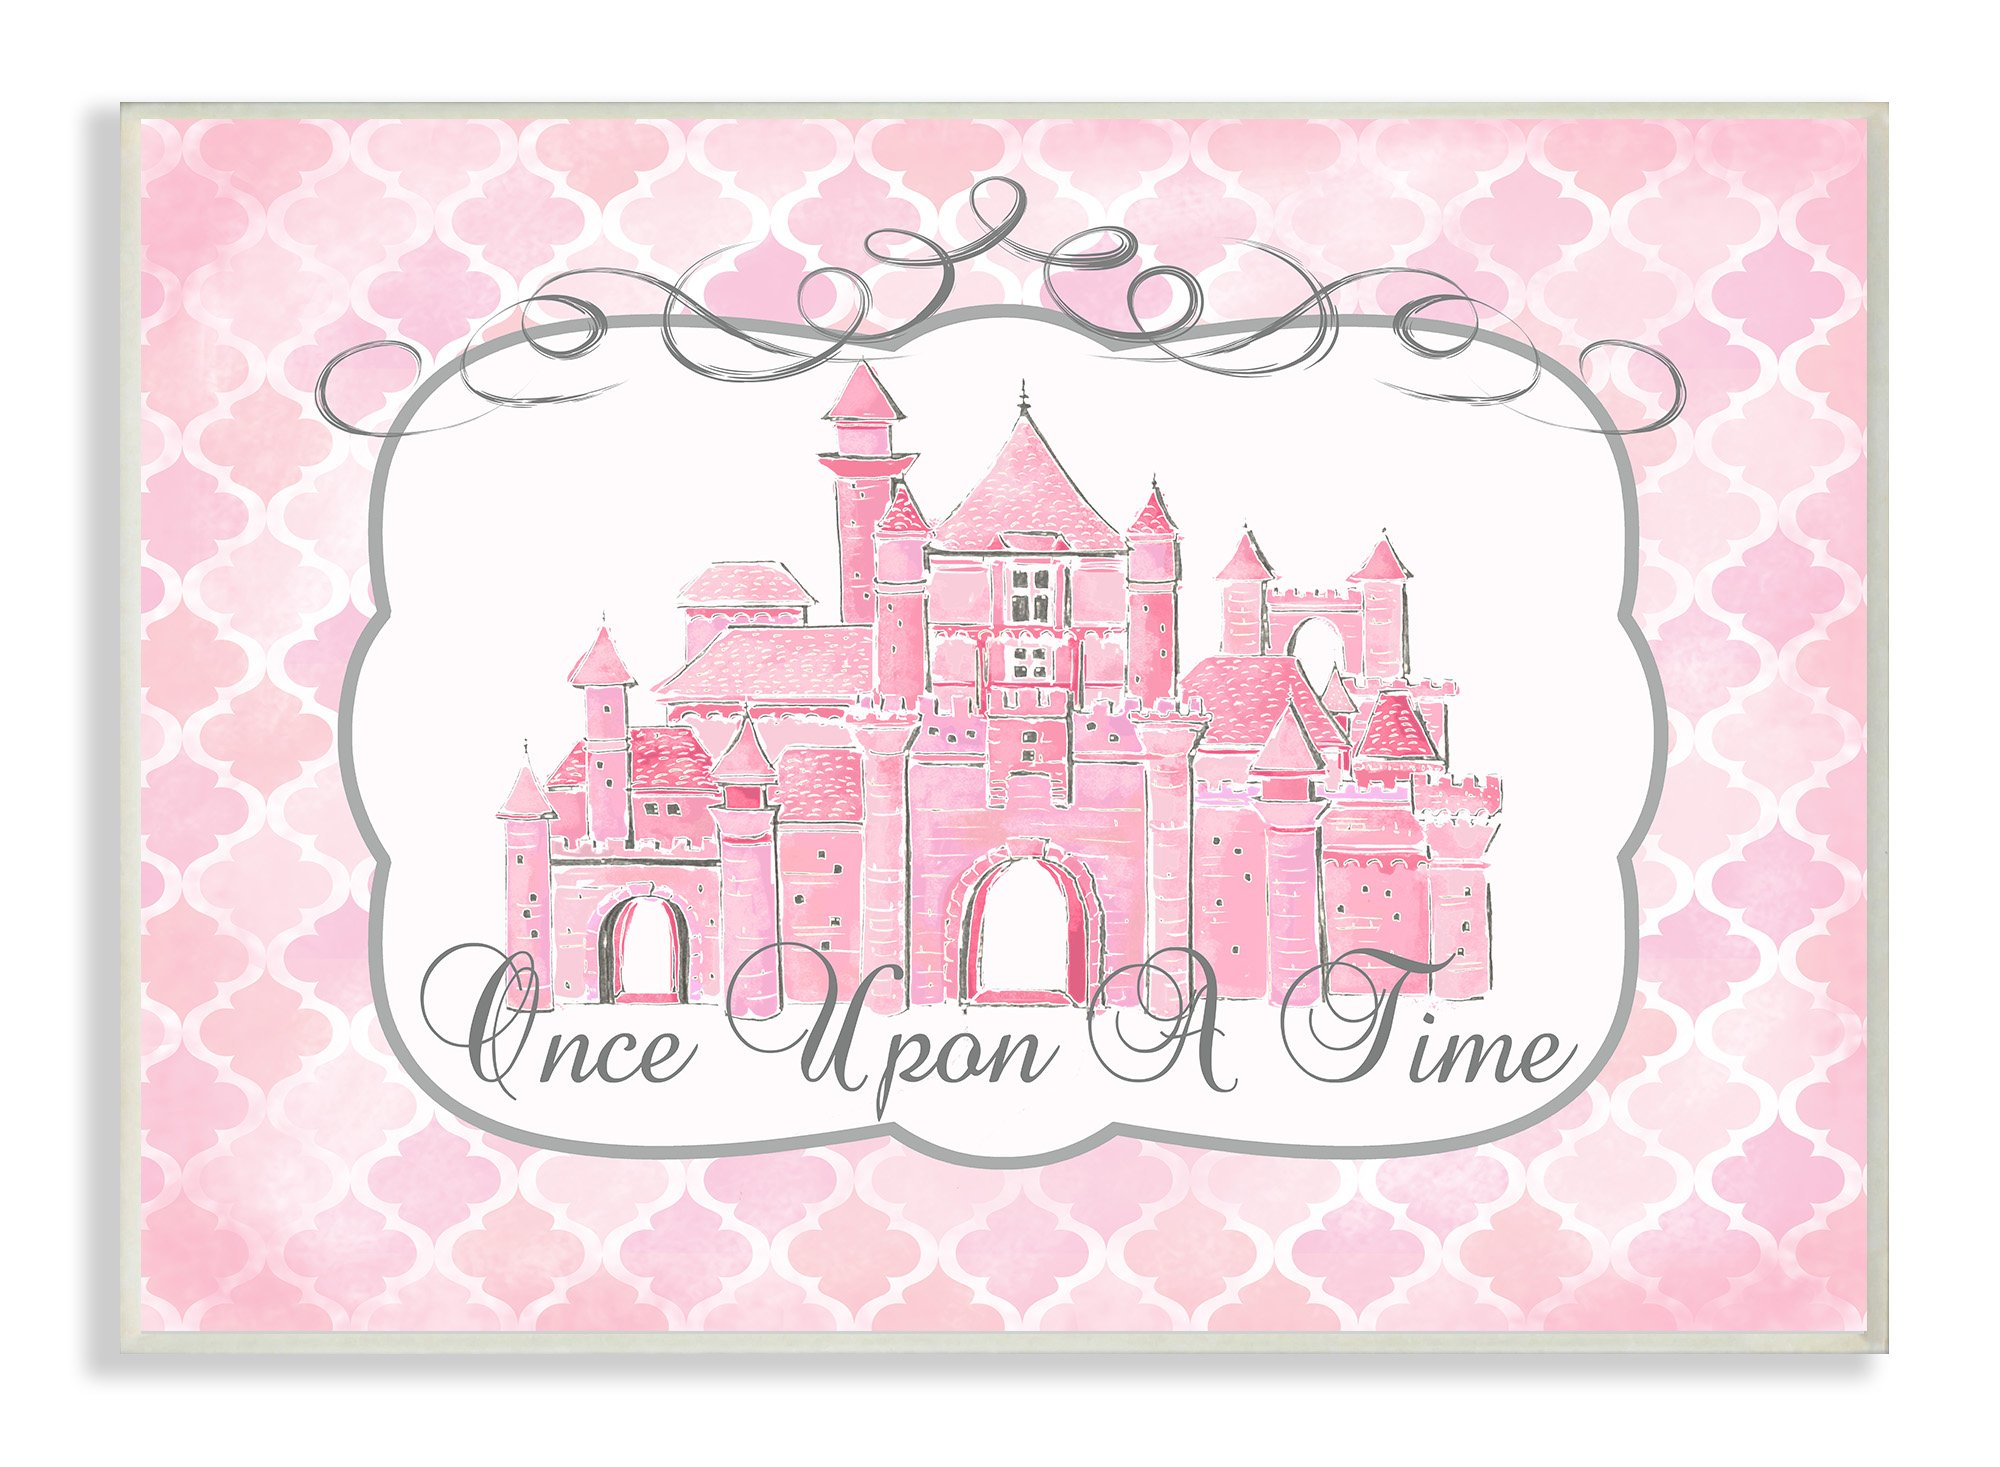 The Kids Room by Stupell Stupell Home Décor Once Upon a Time Pink Water Color Castle Wall Plaque Art, 10 x 0.5 x 15, Proudly Made in USA by The Kids Room by Stupell (Image #1)